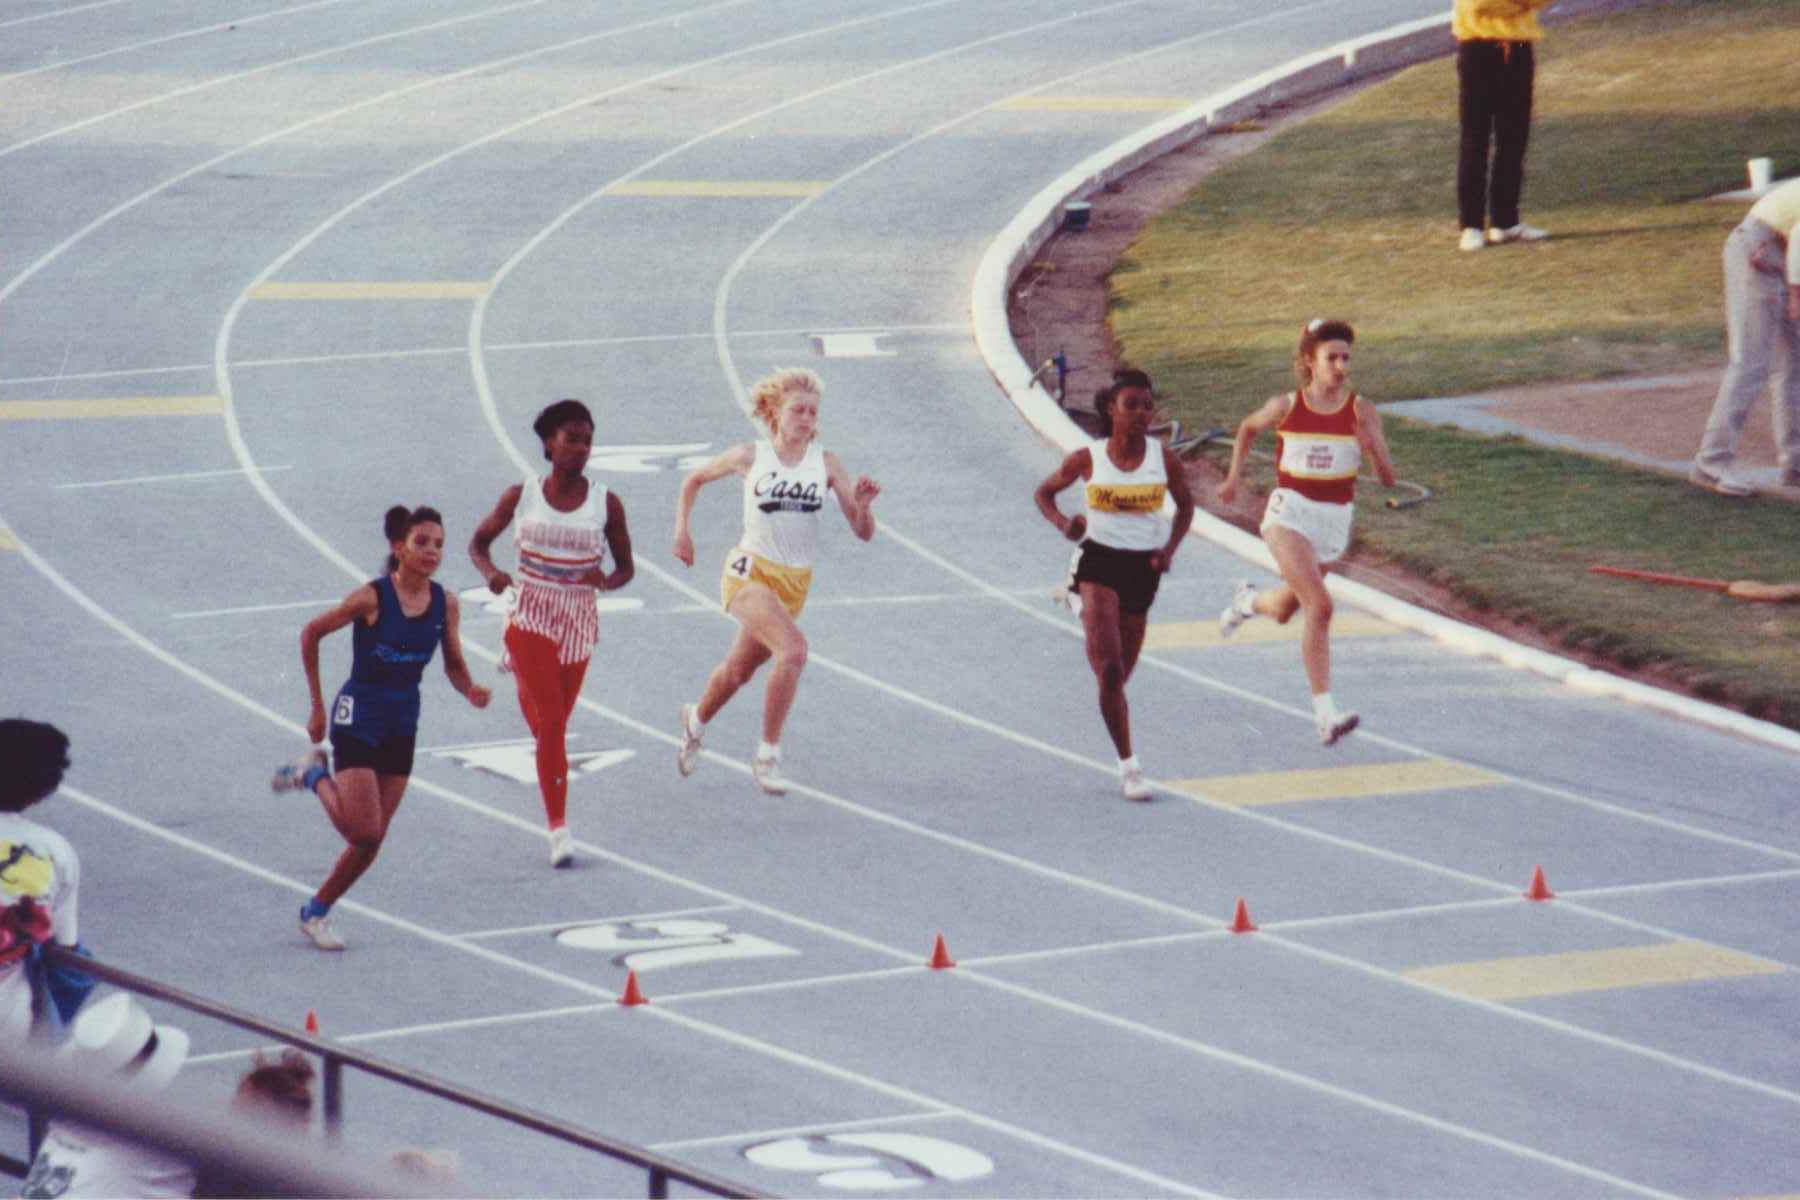 Junior year photo when Woolheater, in yellow shorts, would finish 5th.